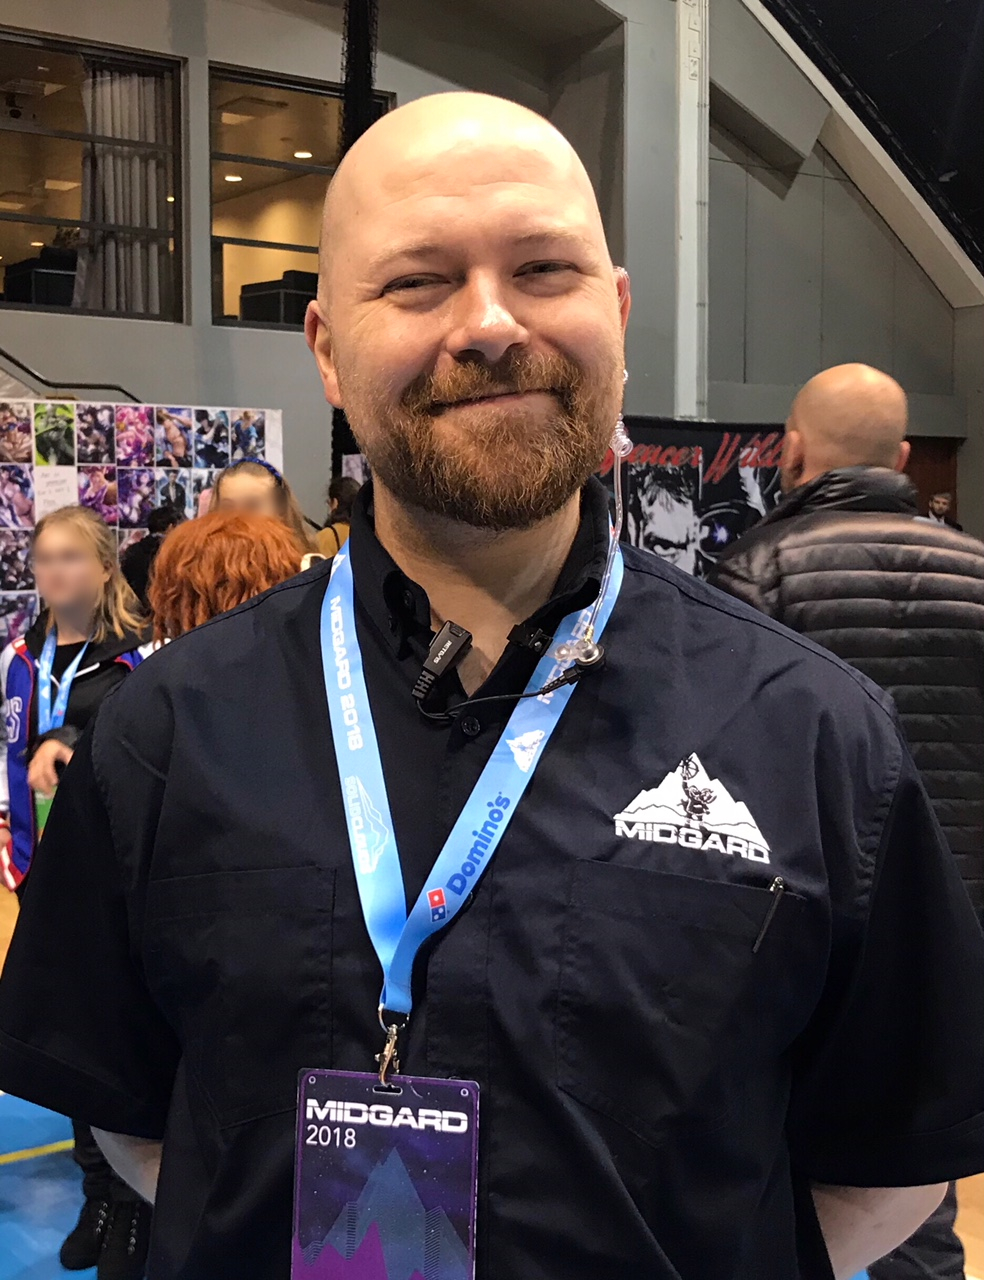 Sveinn Ólafur Lárusson one of Midgard's 2018 organizing staff members.